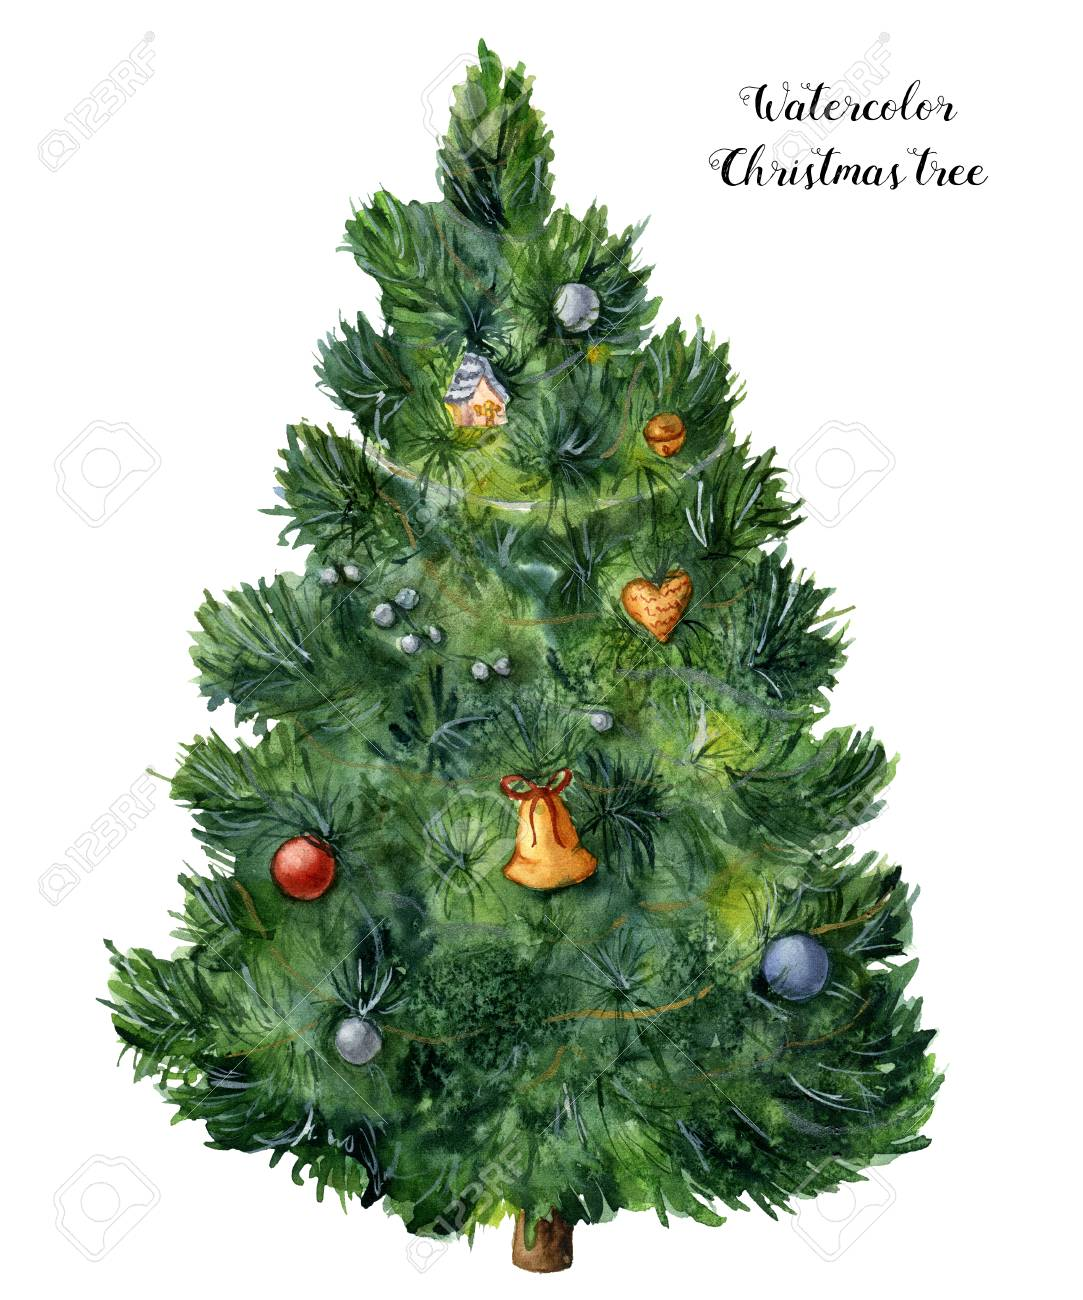 Watercolor Christmas tree. Hand painted pine tree with toys, bells and garlands isolated on white background. Holiday symbol. For design or print. - 91425759